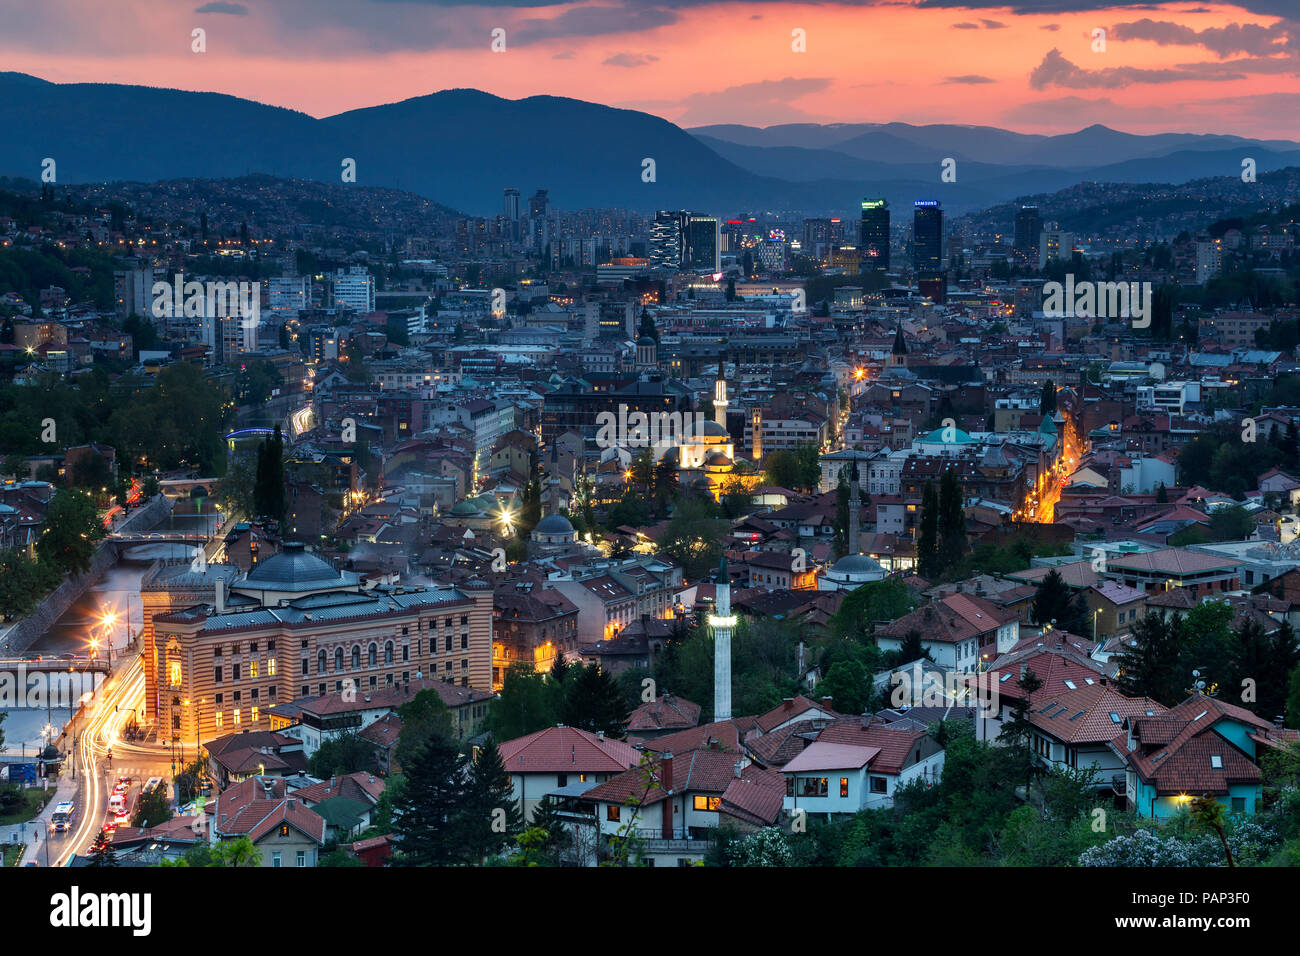 Bosnia-Herzegovina, Sarajevo, Zuta tabija in the evening - Stock Image